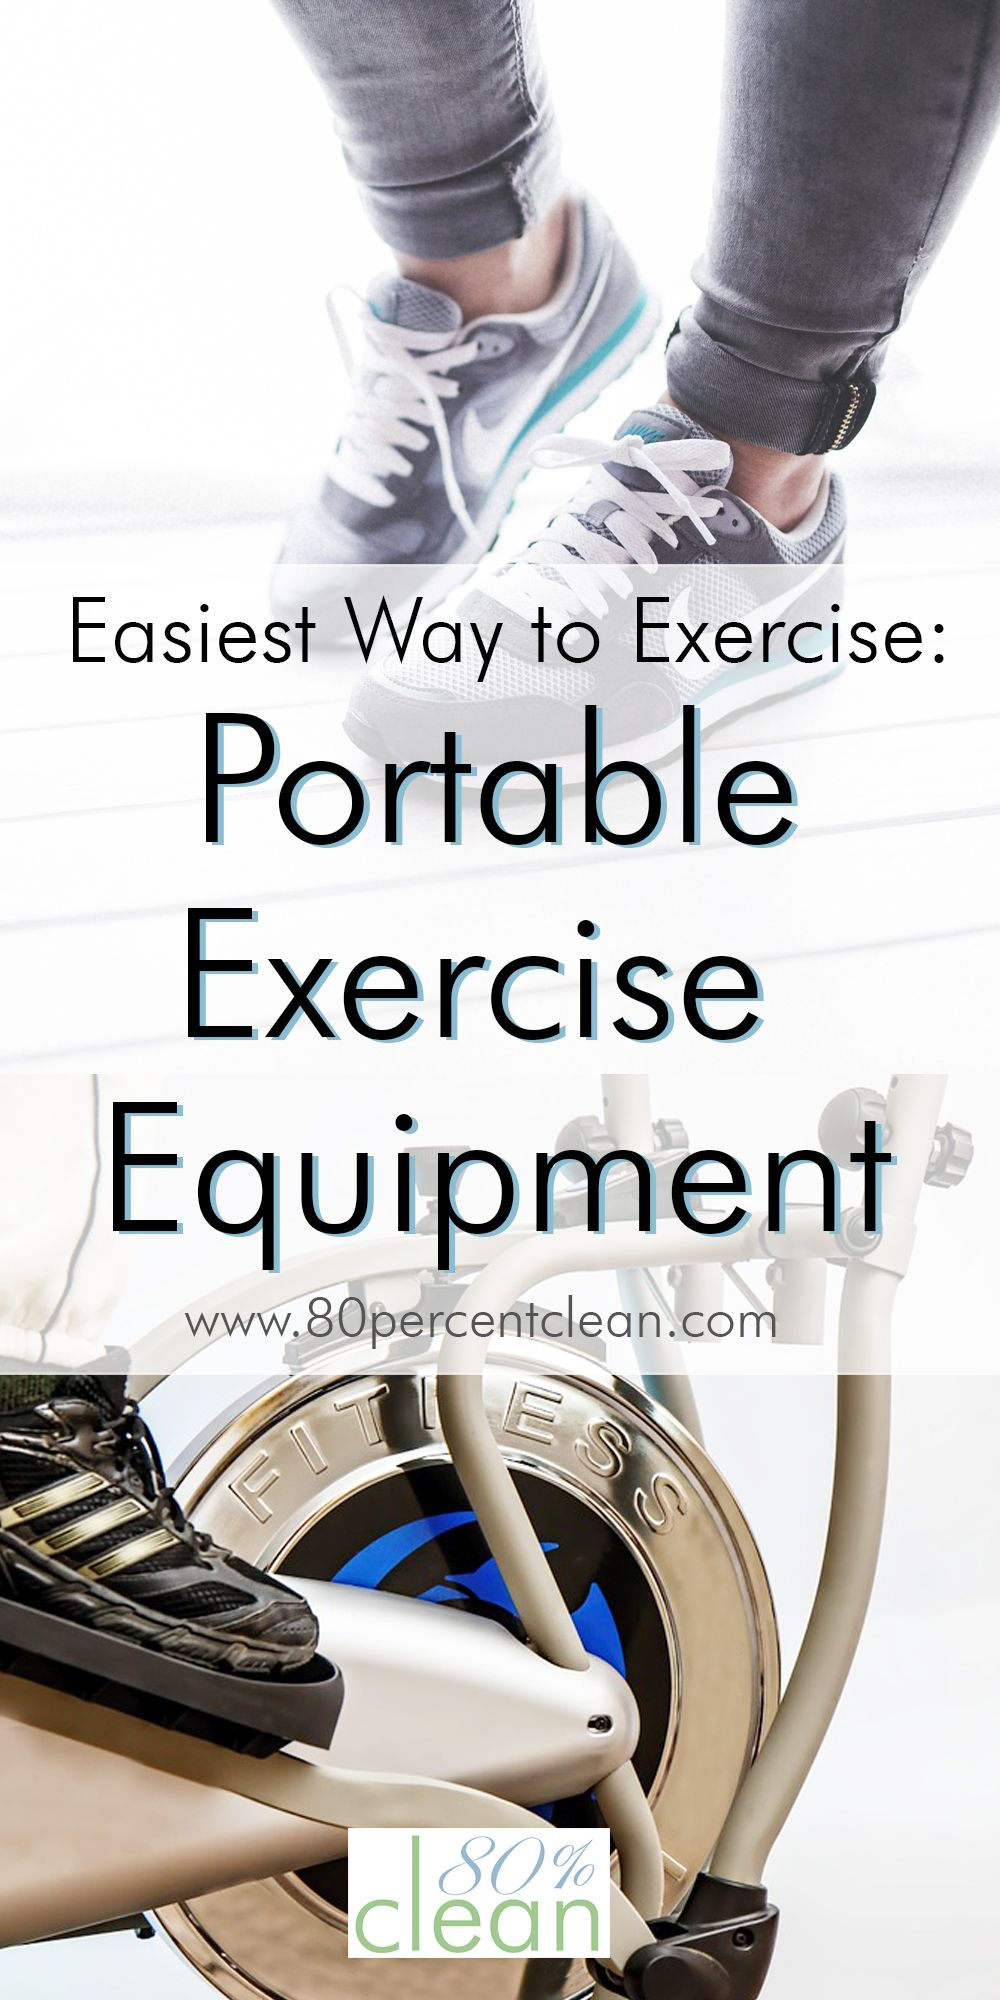 Great idea! Having portable exercise equipment around is a perfect solution to actually get me off the couch! The portable elliptical is especially interesting.